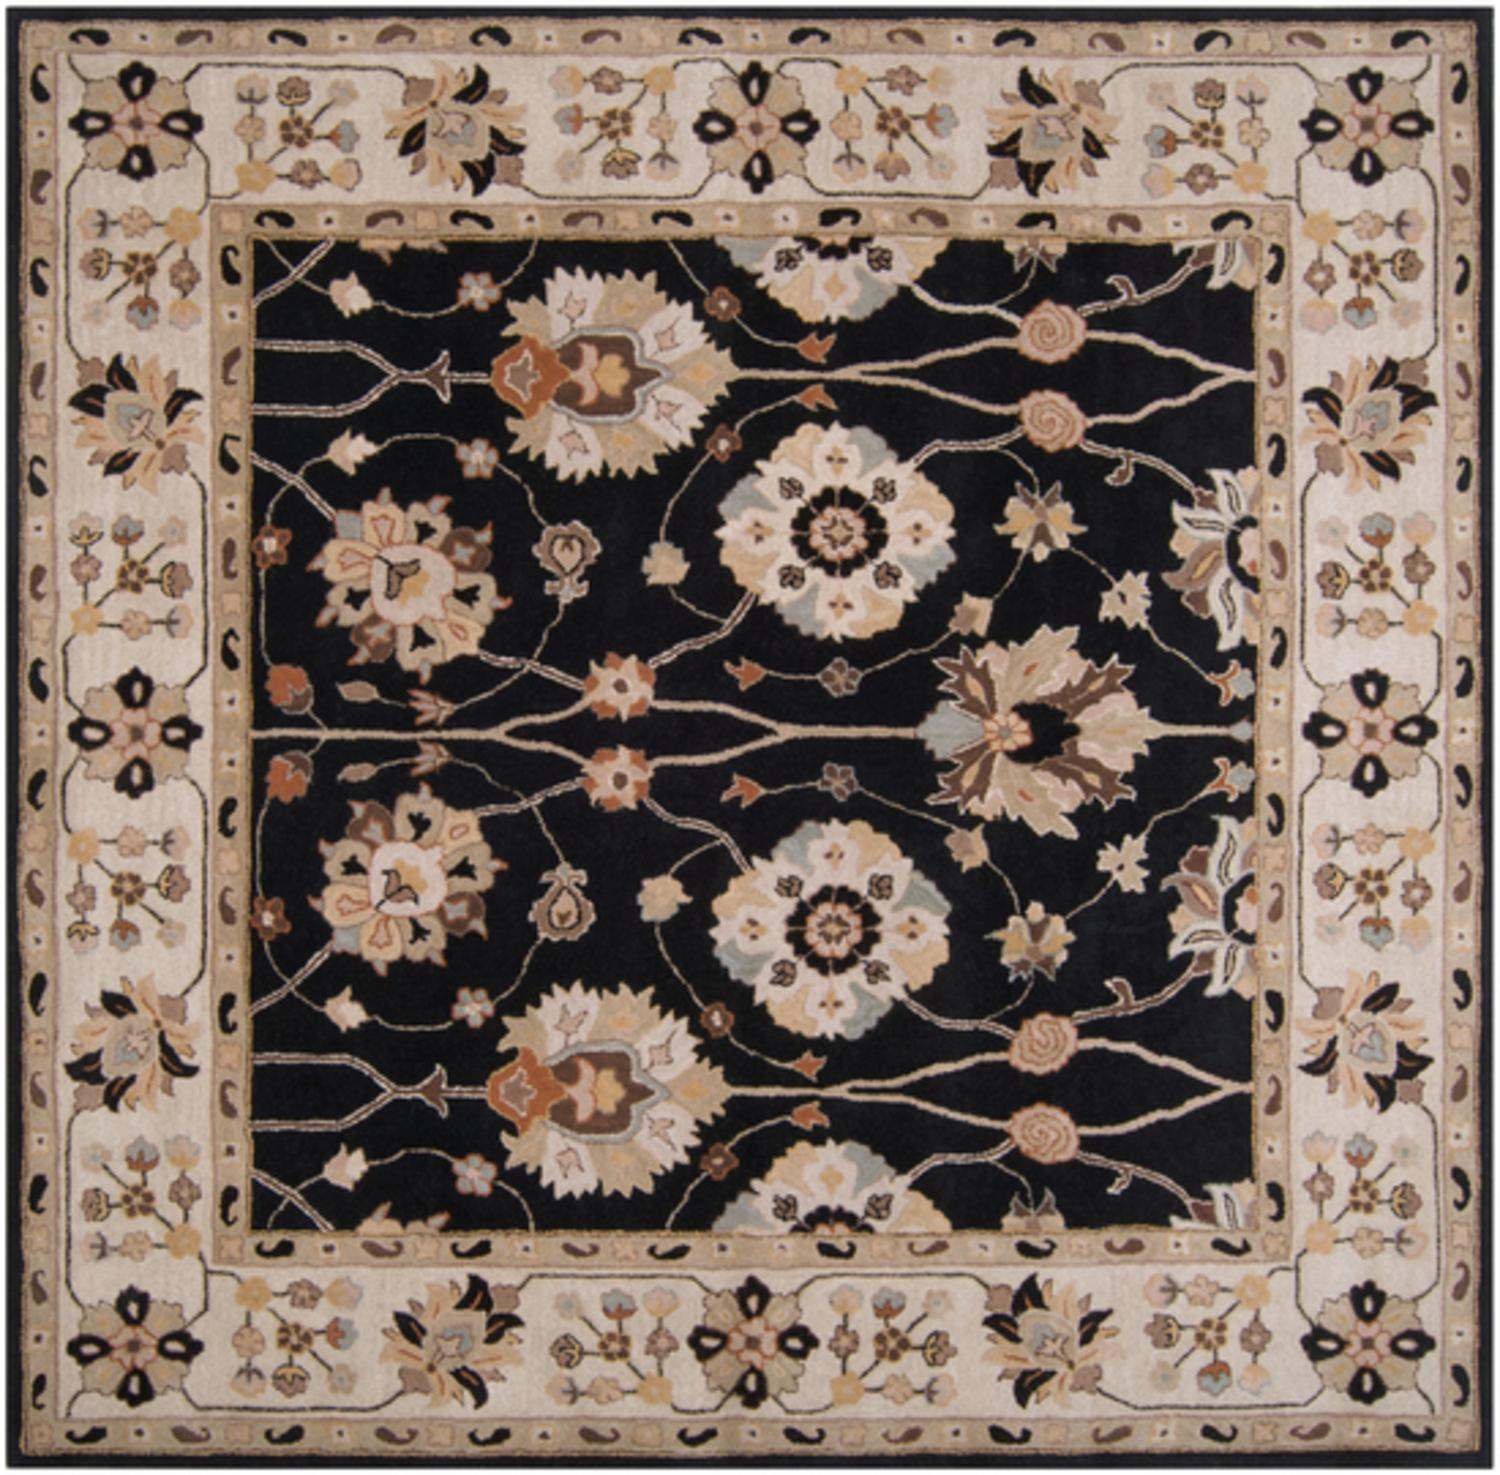 9.75' x 9.75' Gregoria Jet Black and Safari Tan Hand Tufted Wool Area Throw Rug